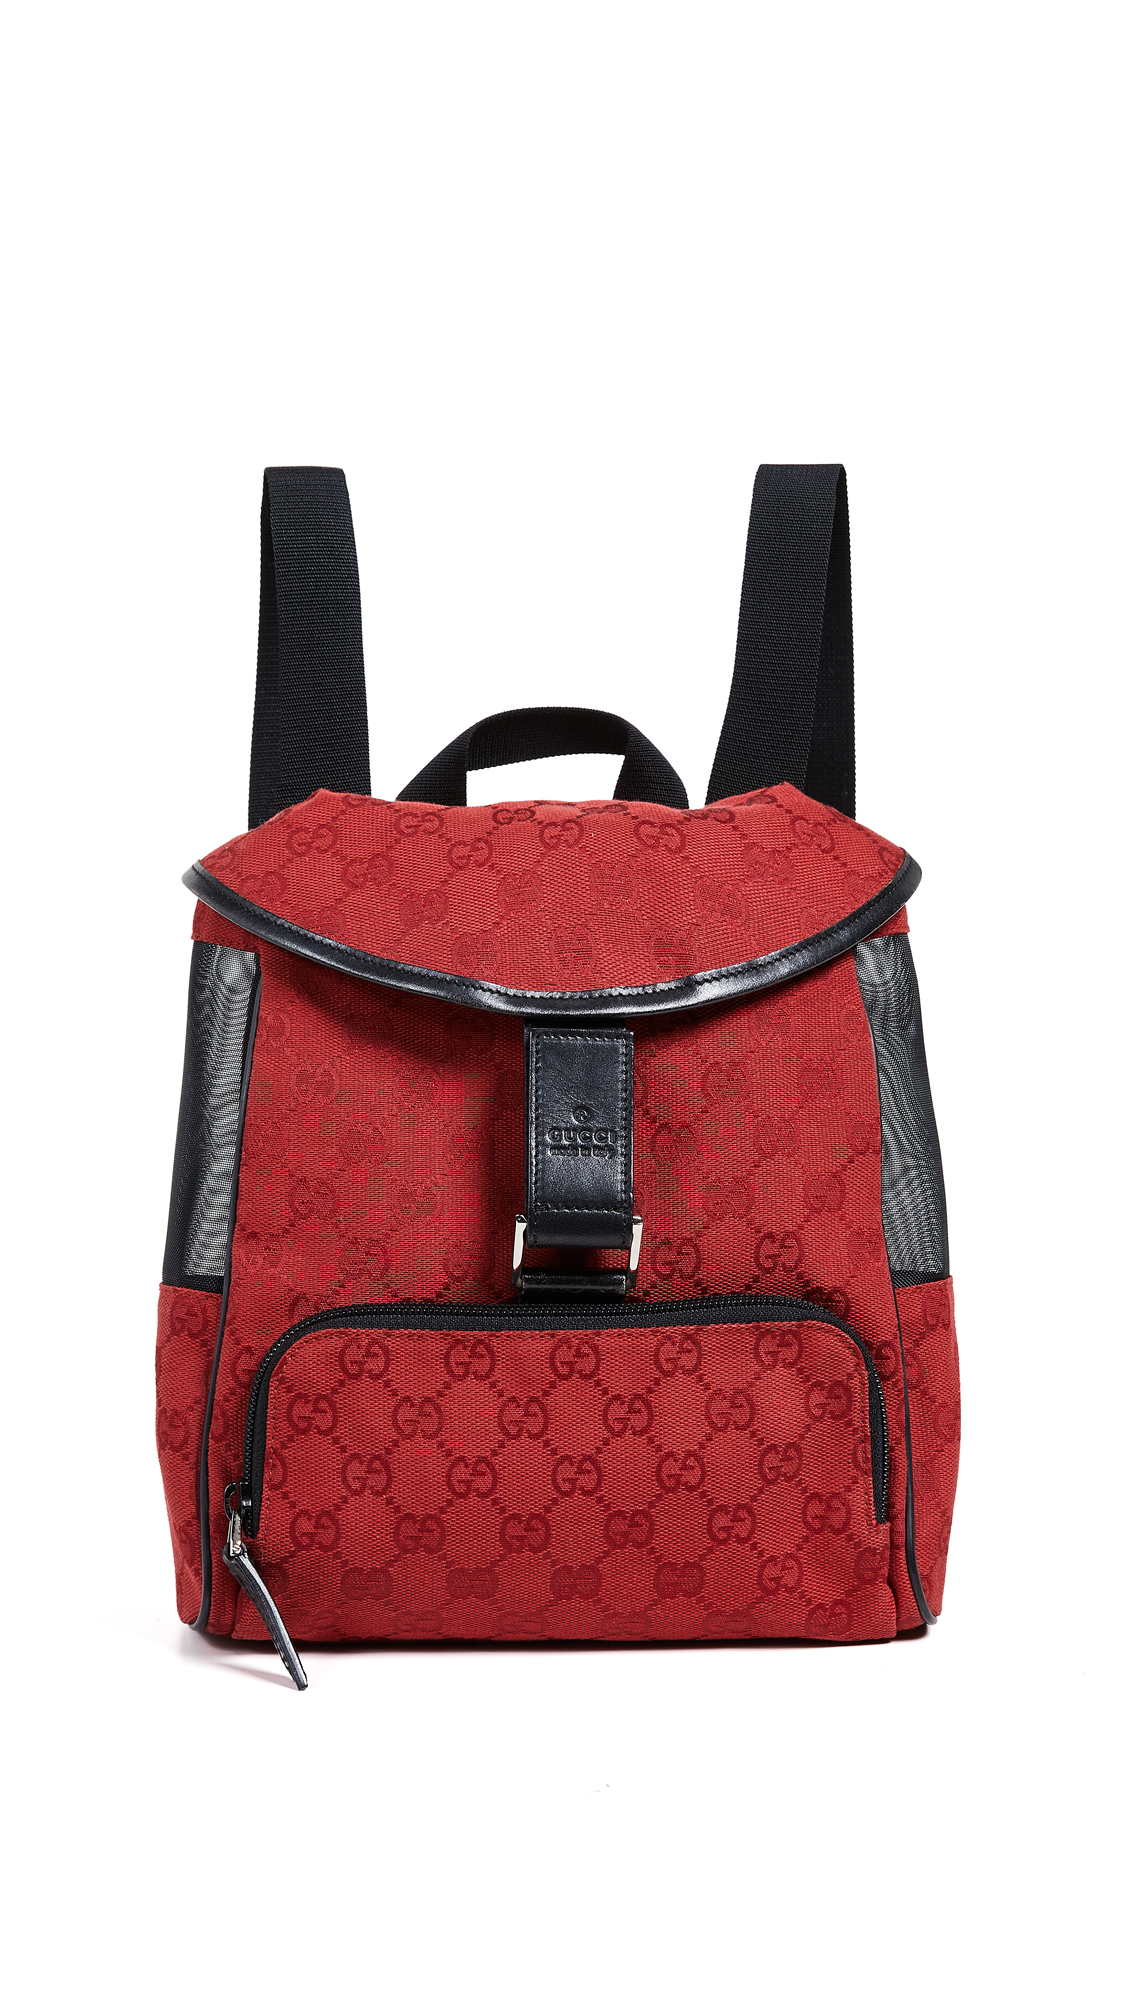 WHAT GOES AROUND COMES AROUND Gucci Canvas Backpack in Red